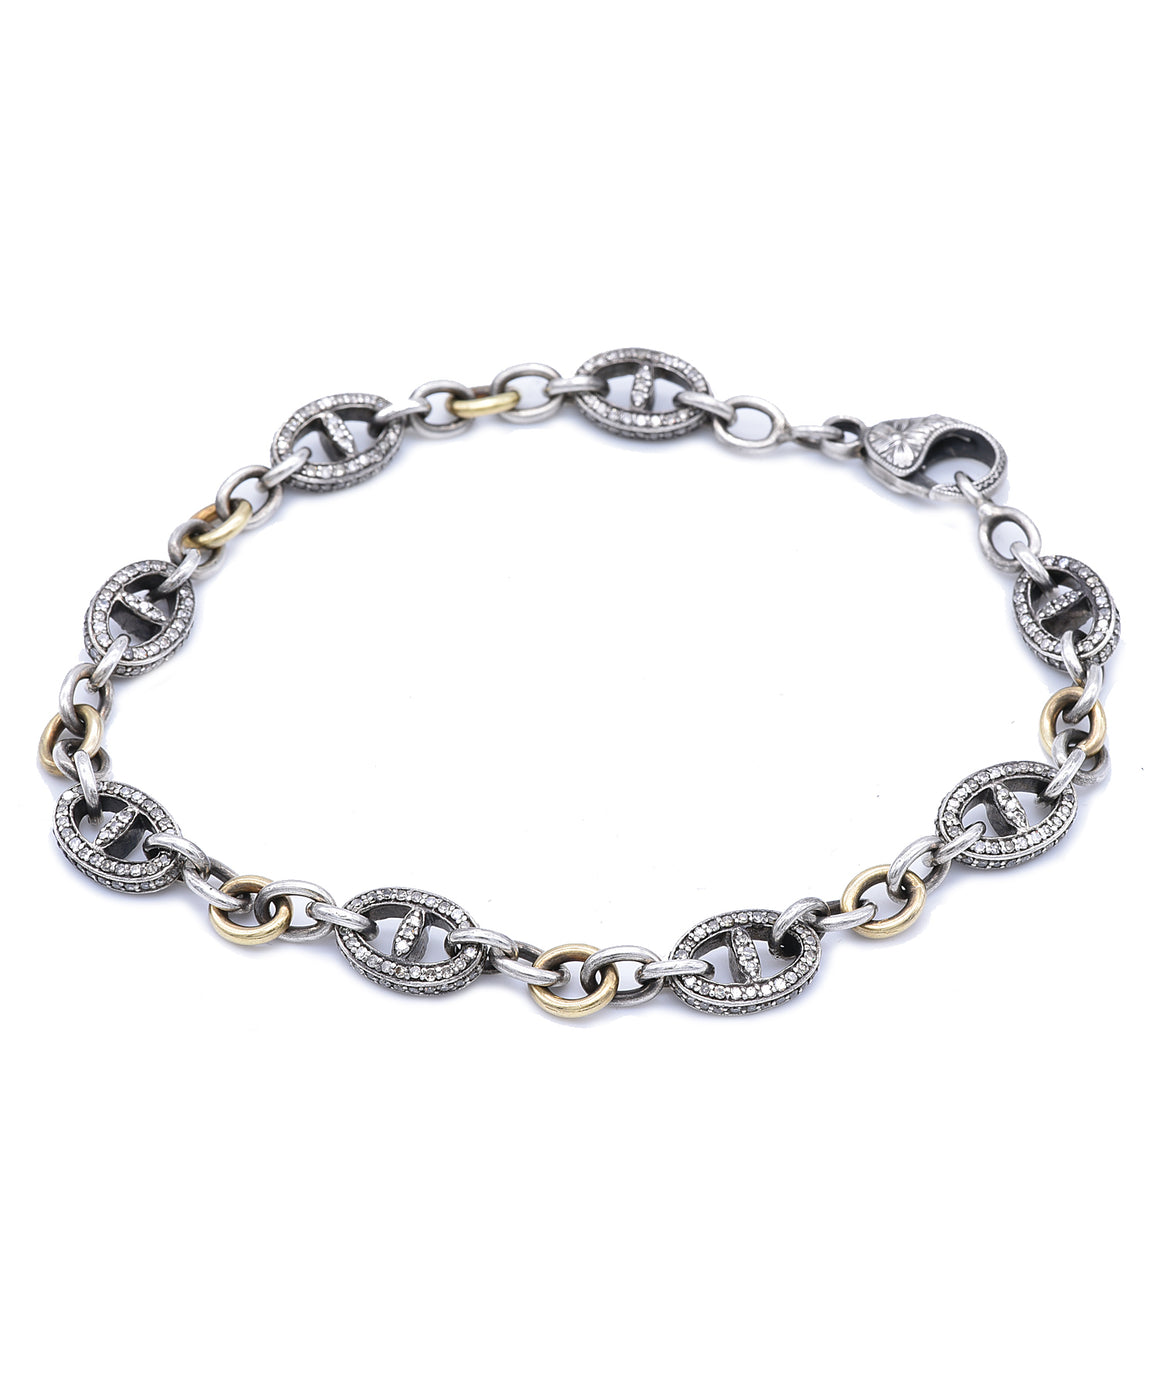 Long Mariner link bracelet with champagne diamonds - Lesley Ann Jewels